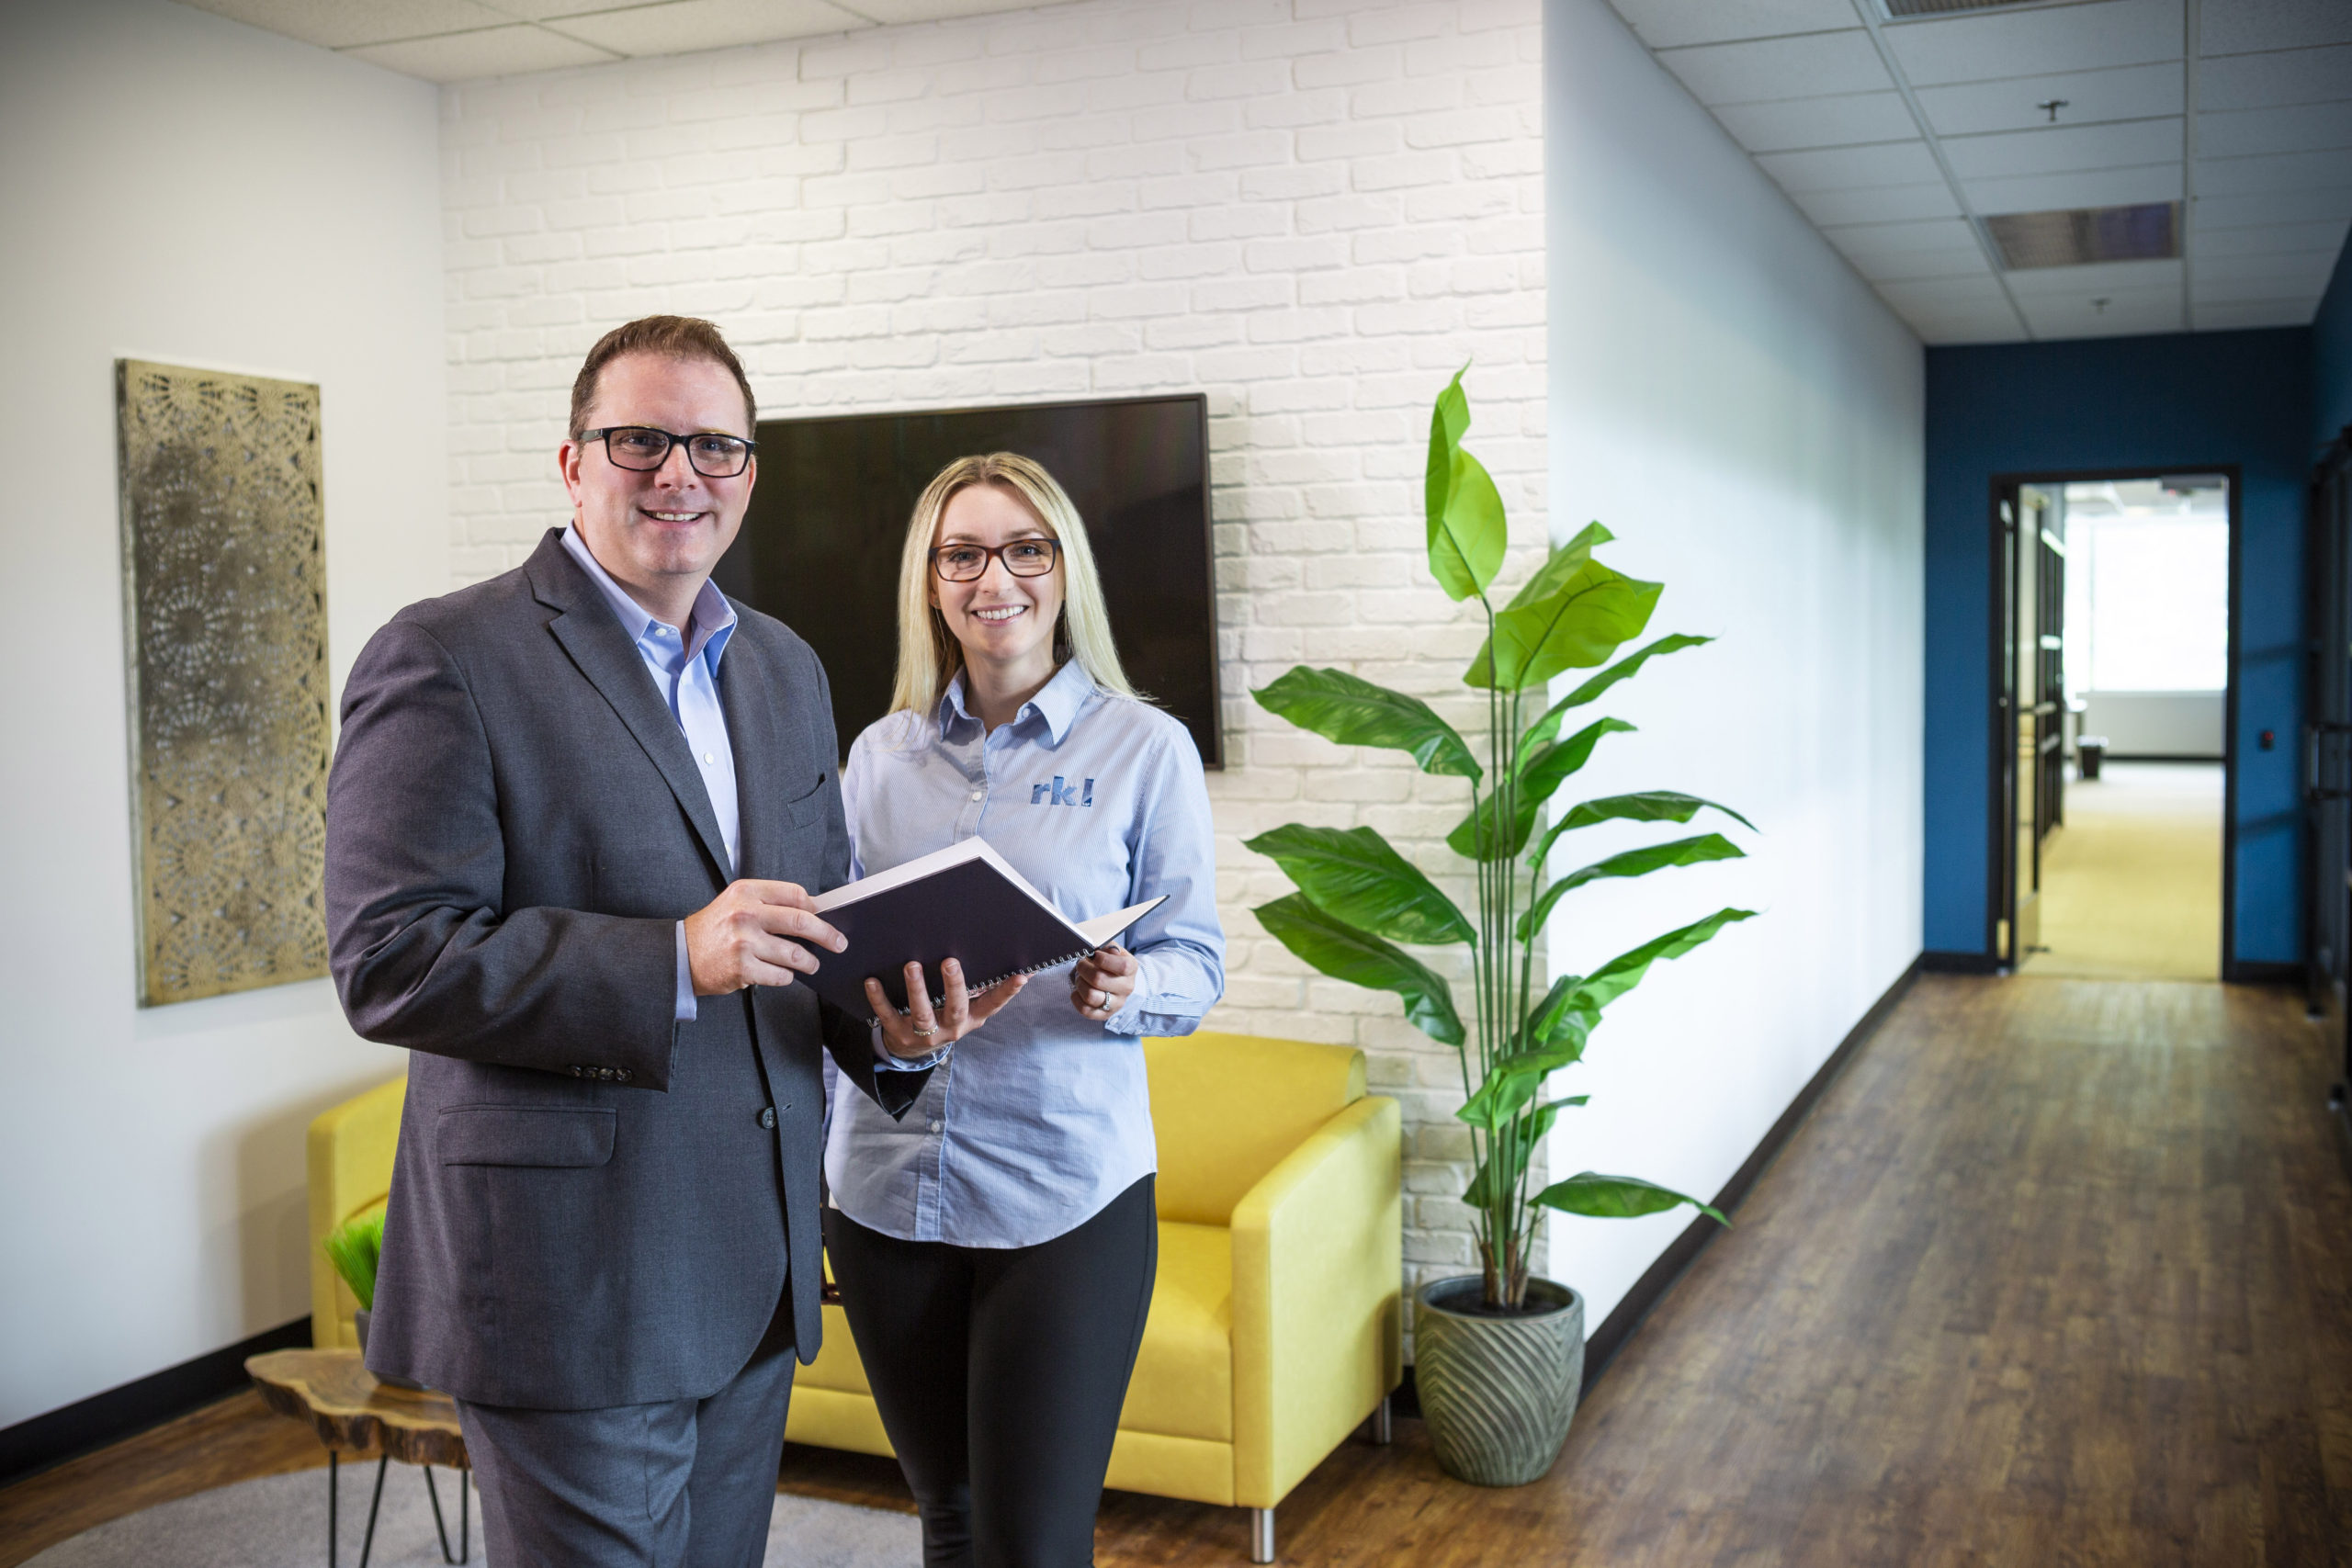 People-Focused Culture Makes RKL One of State's Best Places to Work